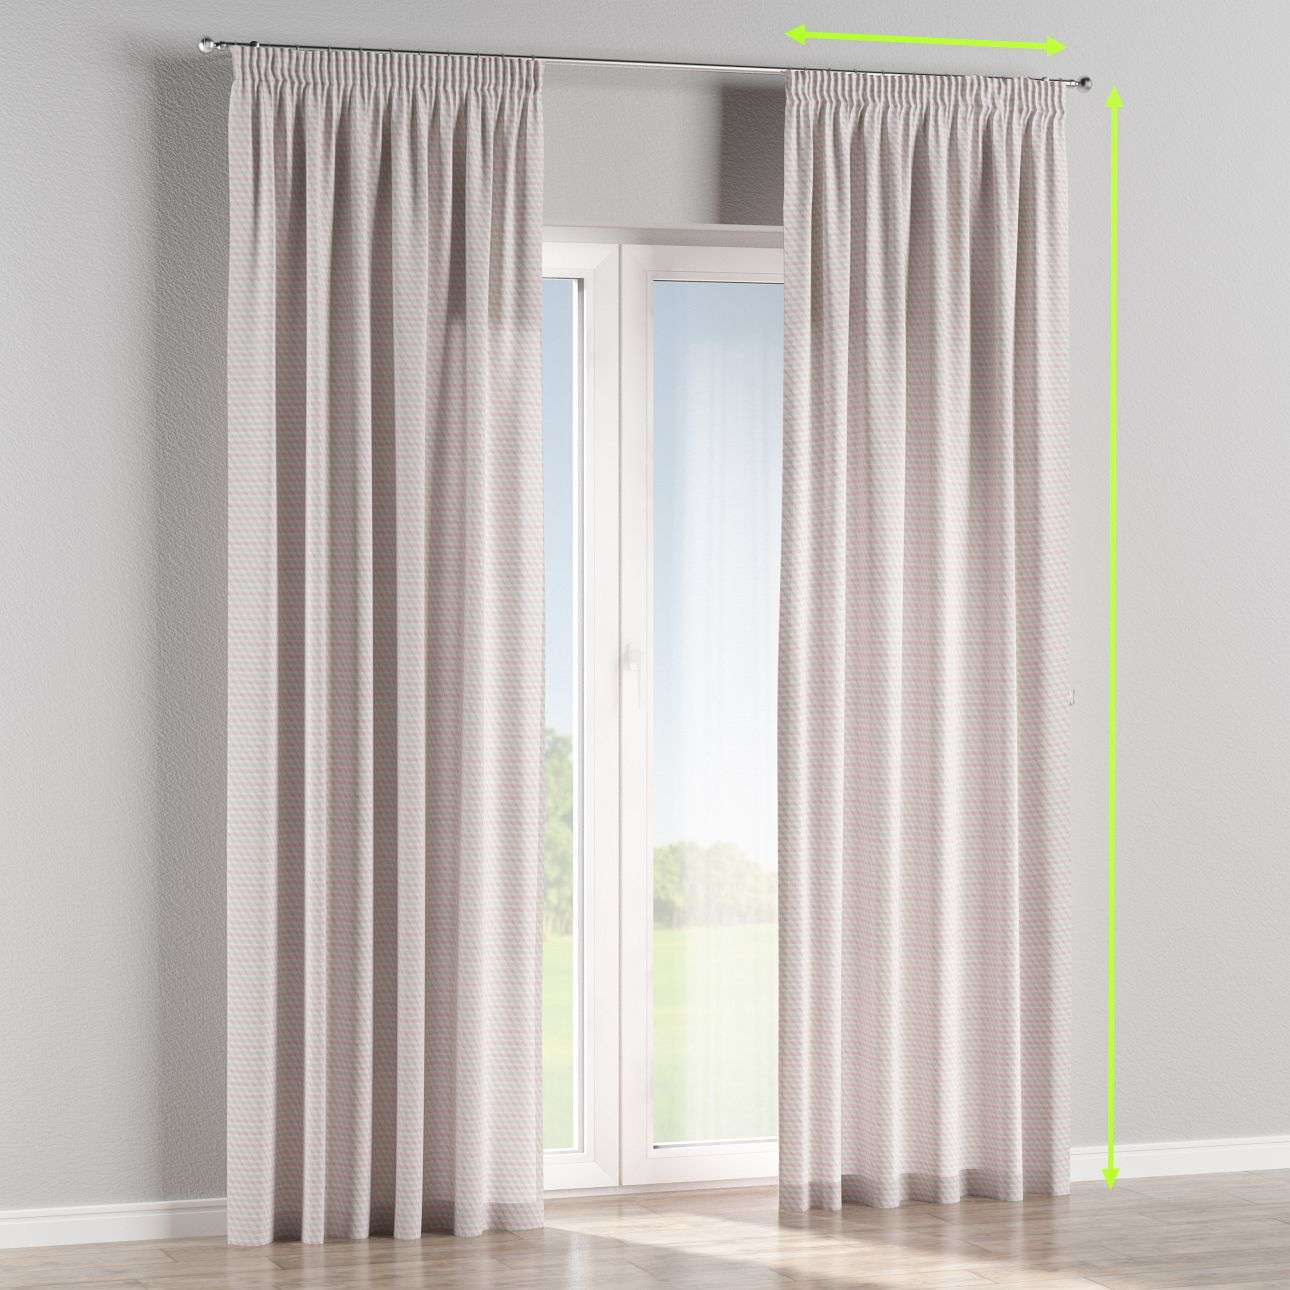 Pencil pleat lined curtains in collection Rustica, fabric: 140-30